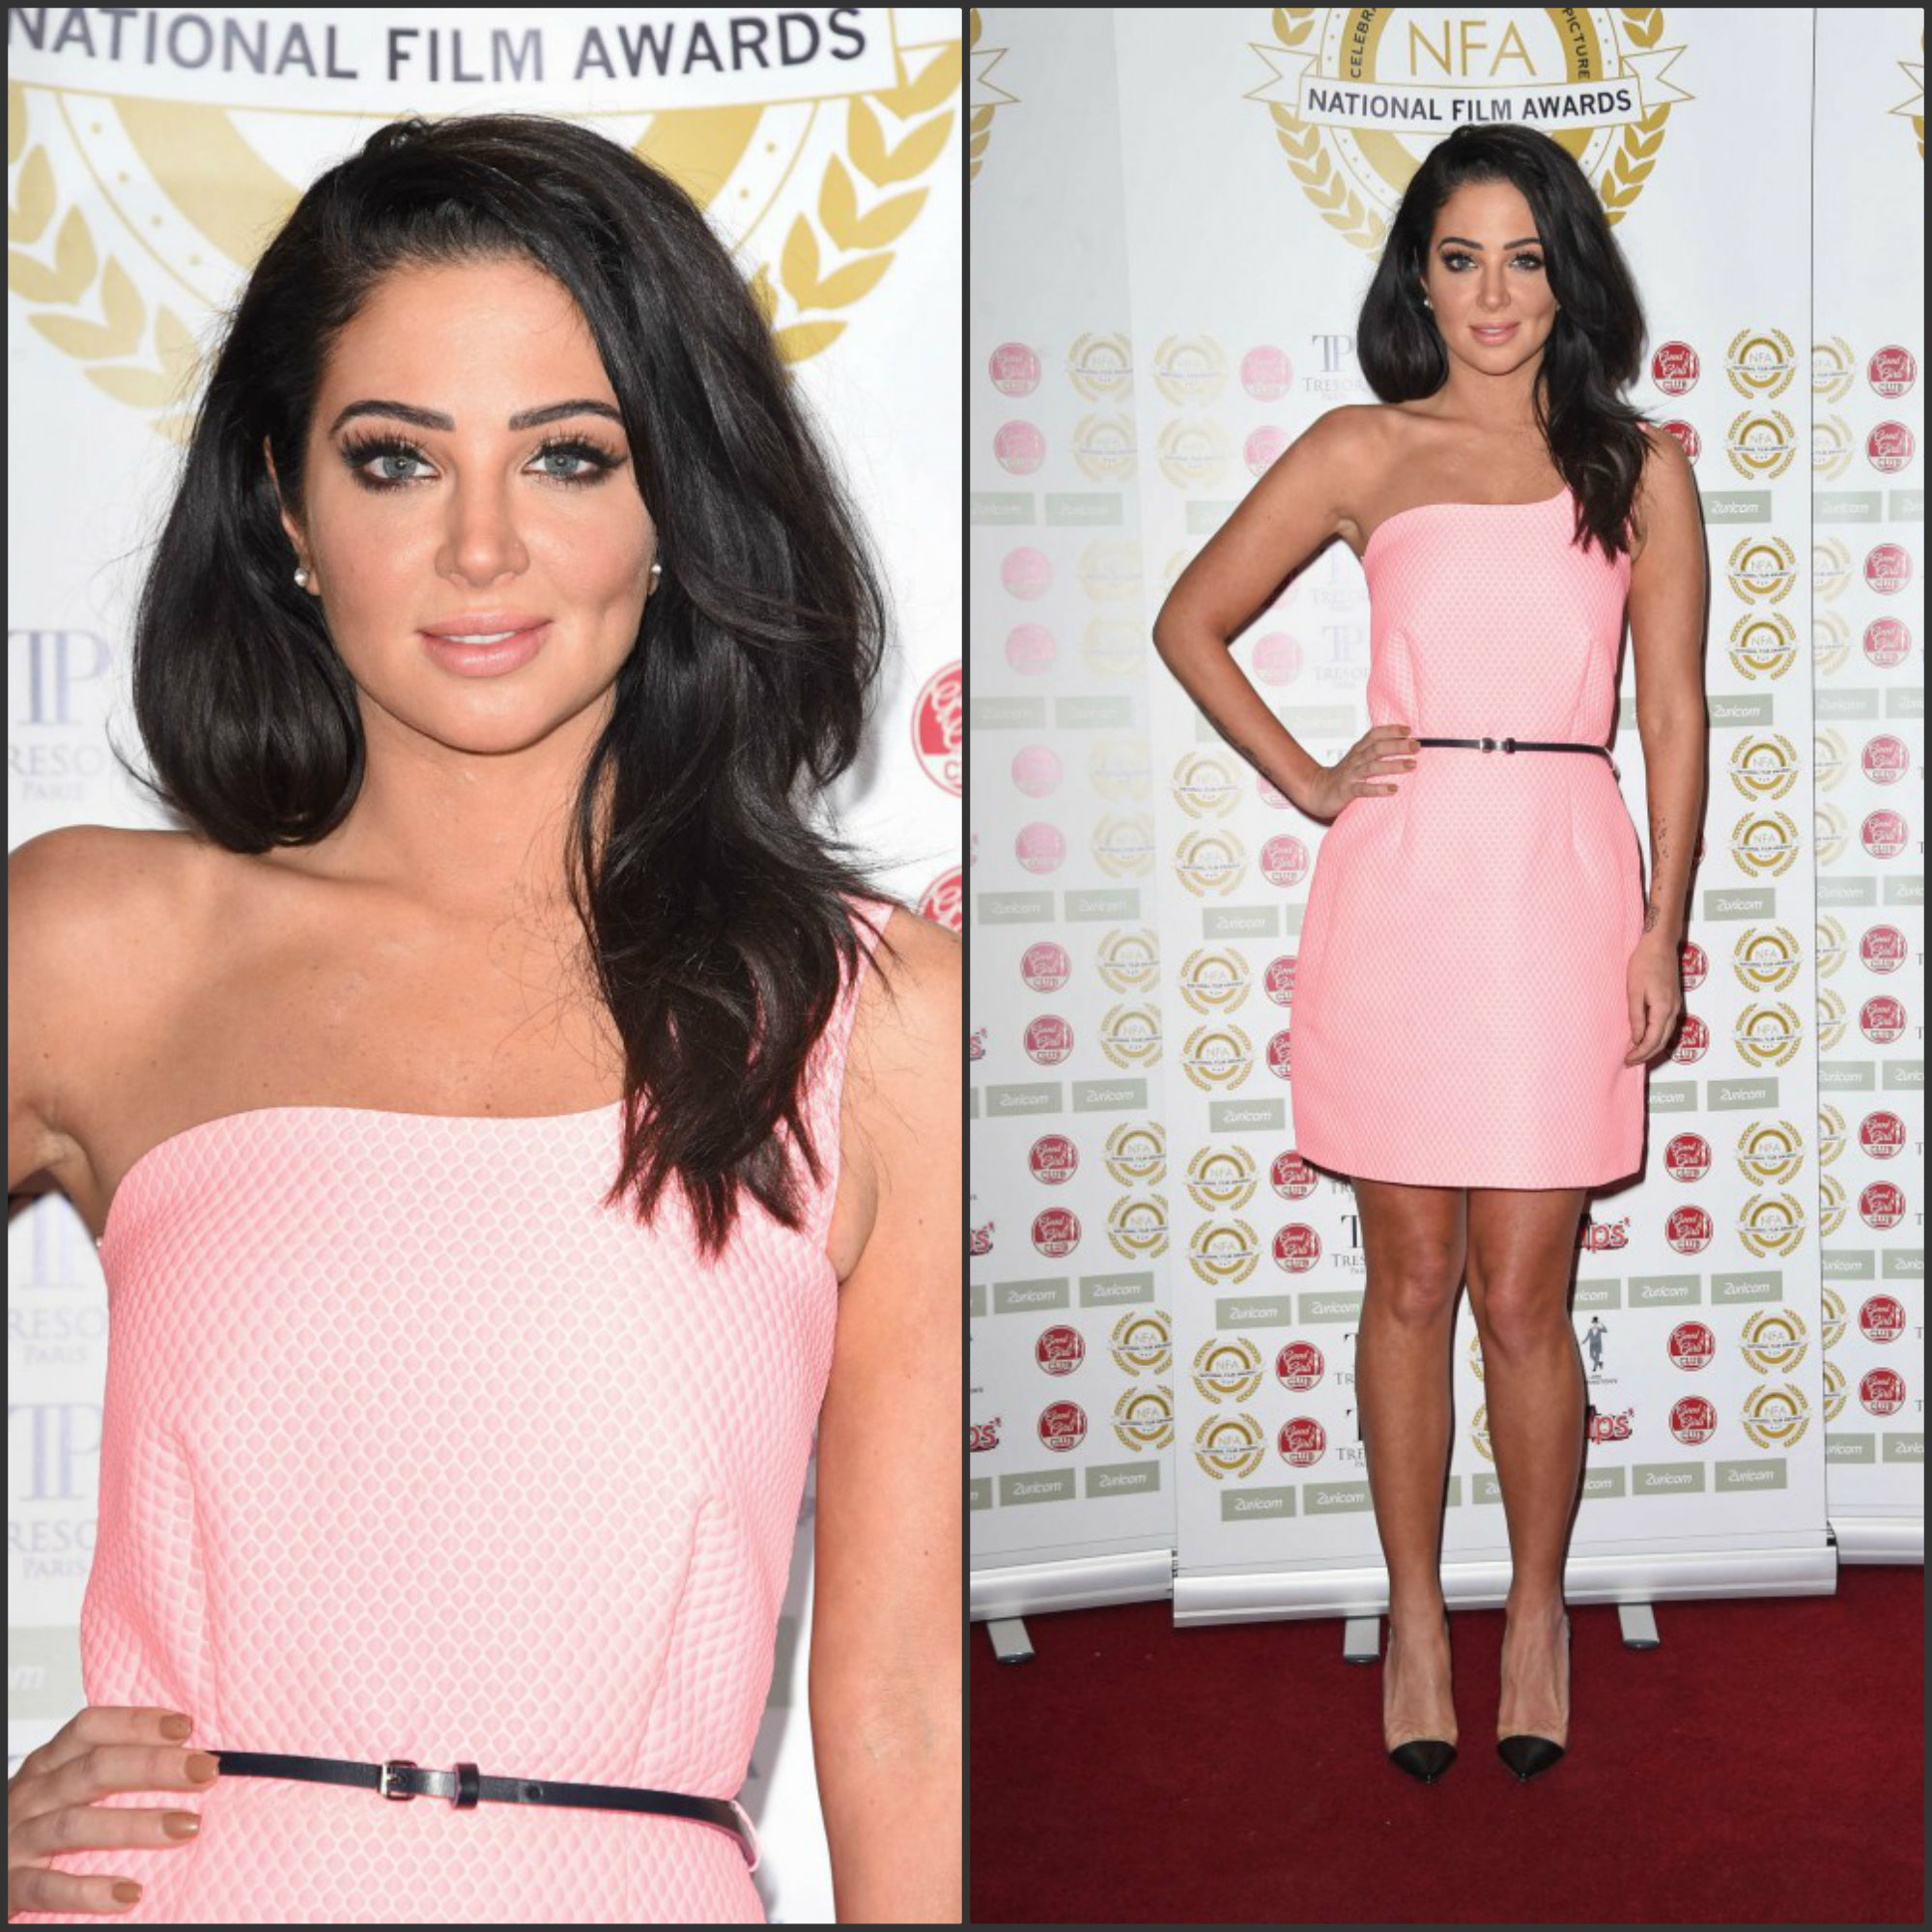 Tulisa-Contostavlos-in-victoria-beckham-at-the-2015-National-Film-Awards